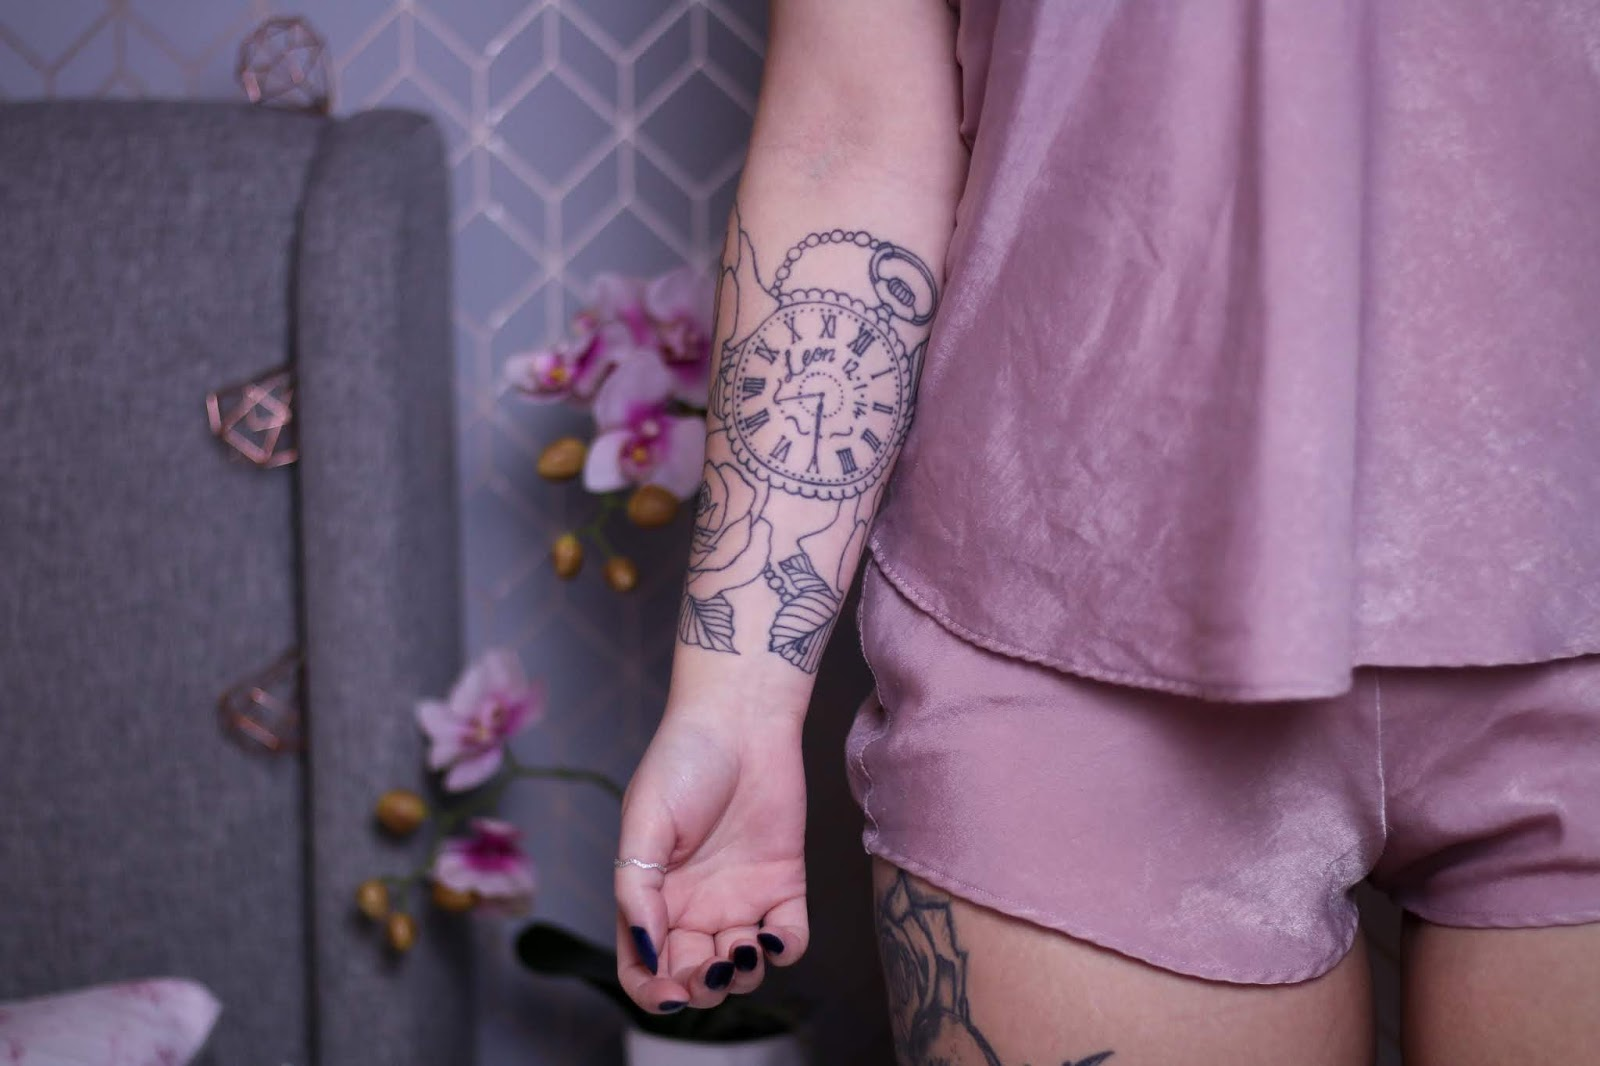 Mid shot photo of Jordanne standing in bedroom with a grey bed, pink orchid and white bedside table out of focus in the background. Jordanne is wearing pink silk pyjamas with her half sleeve tattoo on display facing the camera. The tattoo is a pocket watch with roses around it in black and white.